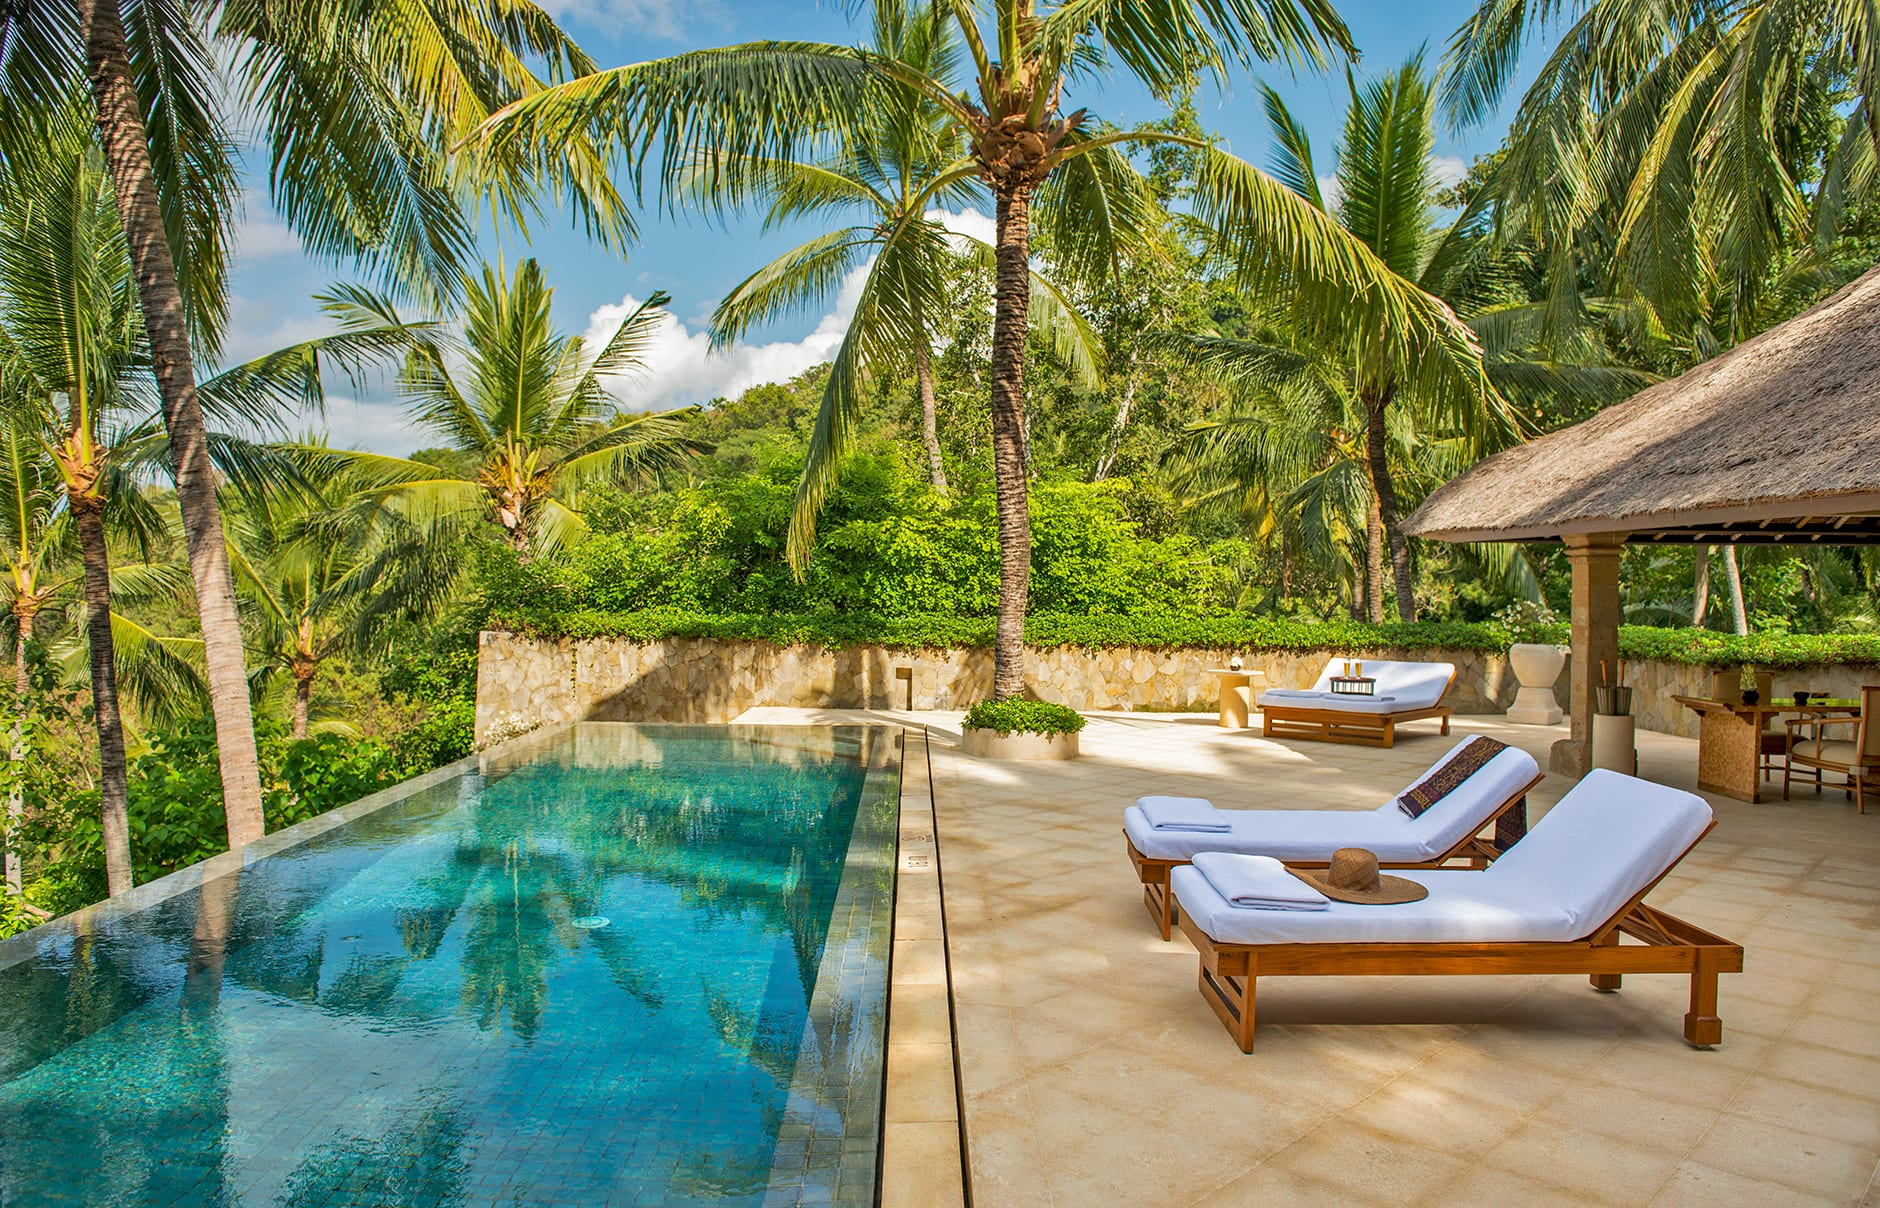 Amankila, Bali, Indonesia. Luxury Hotel Review by TravelPlusStyle. Photo © Aman Resorts